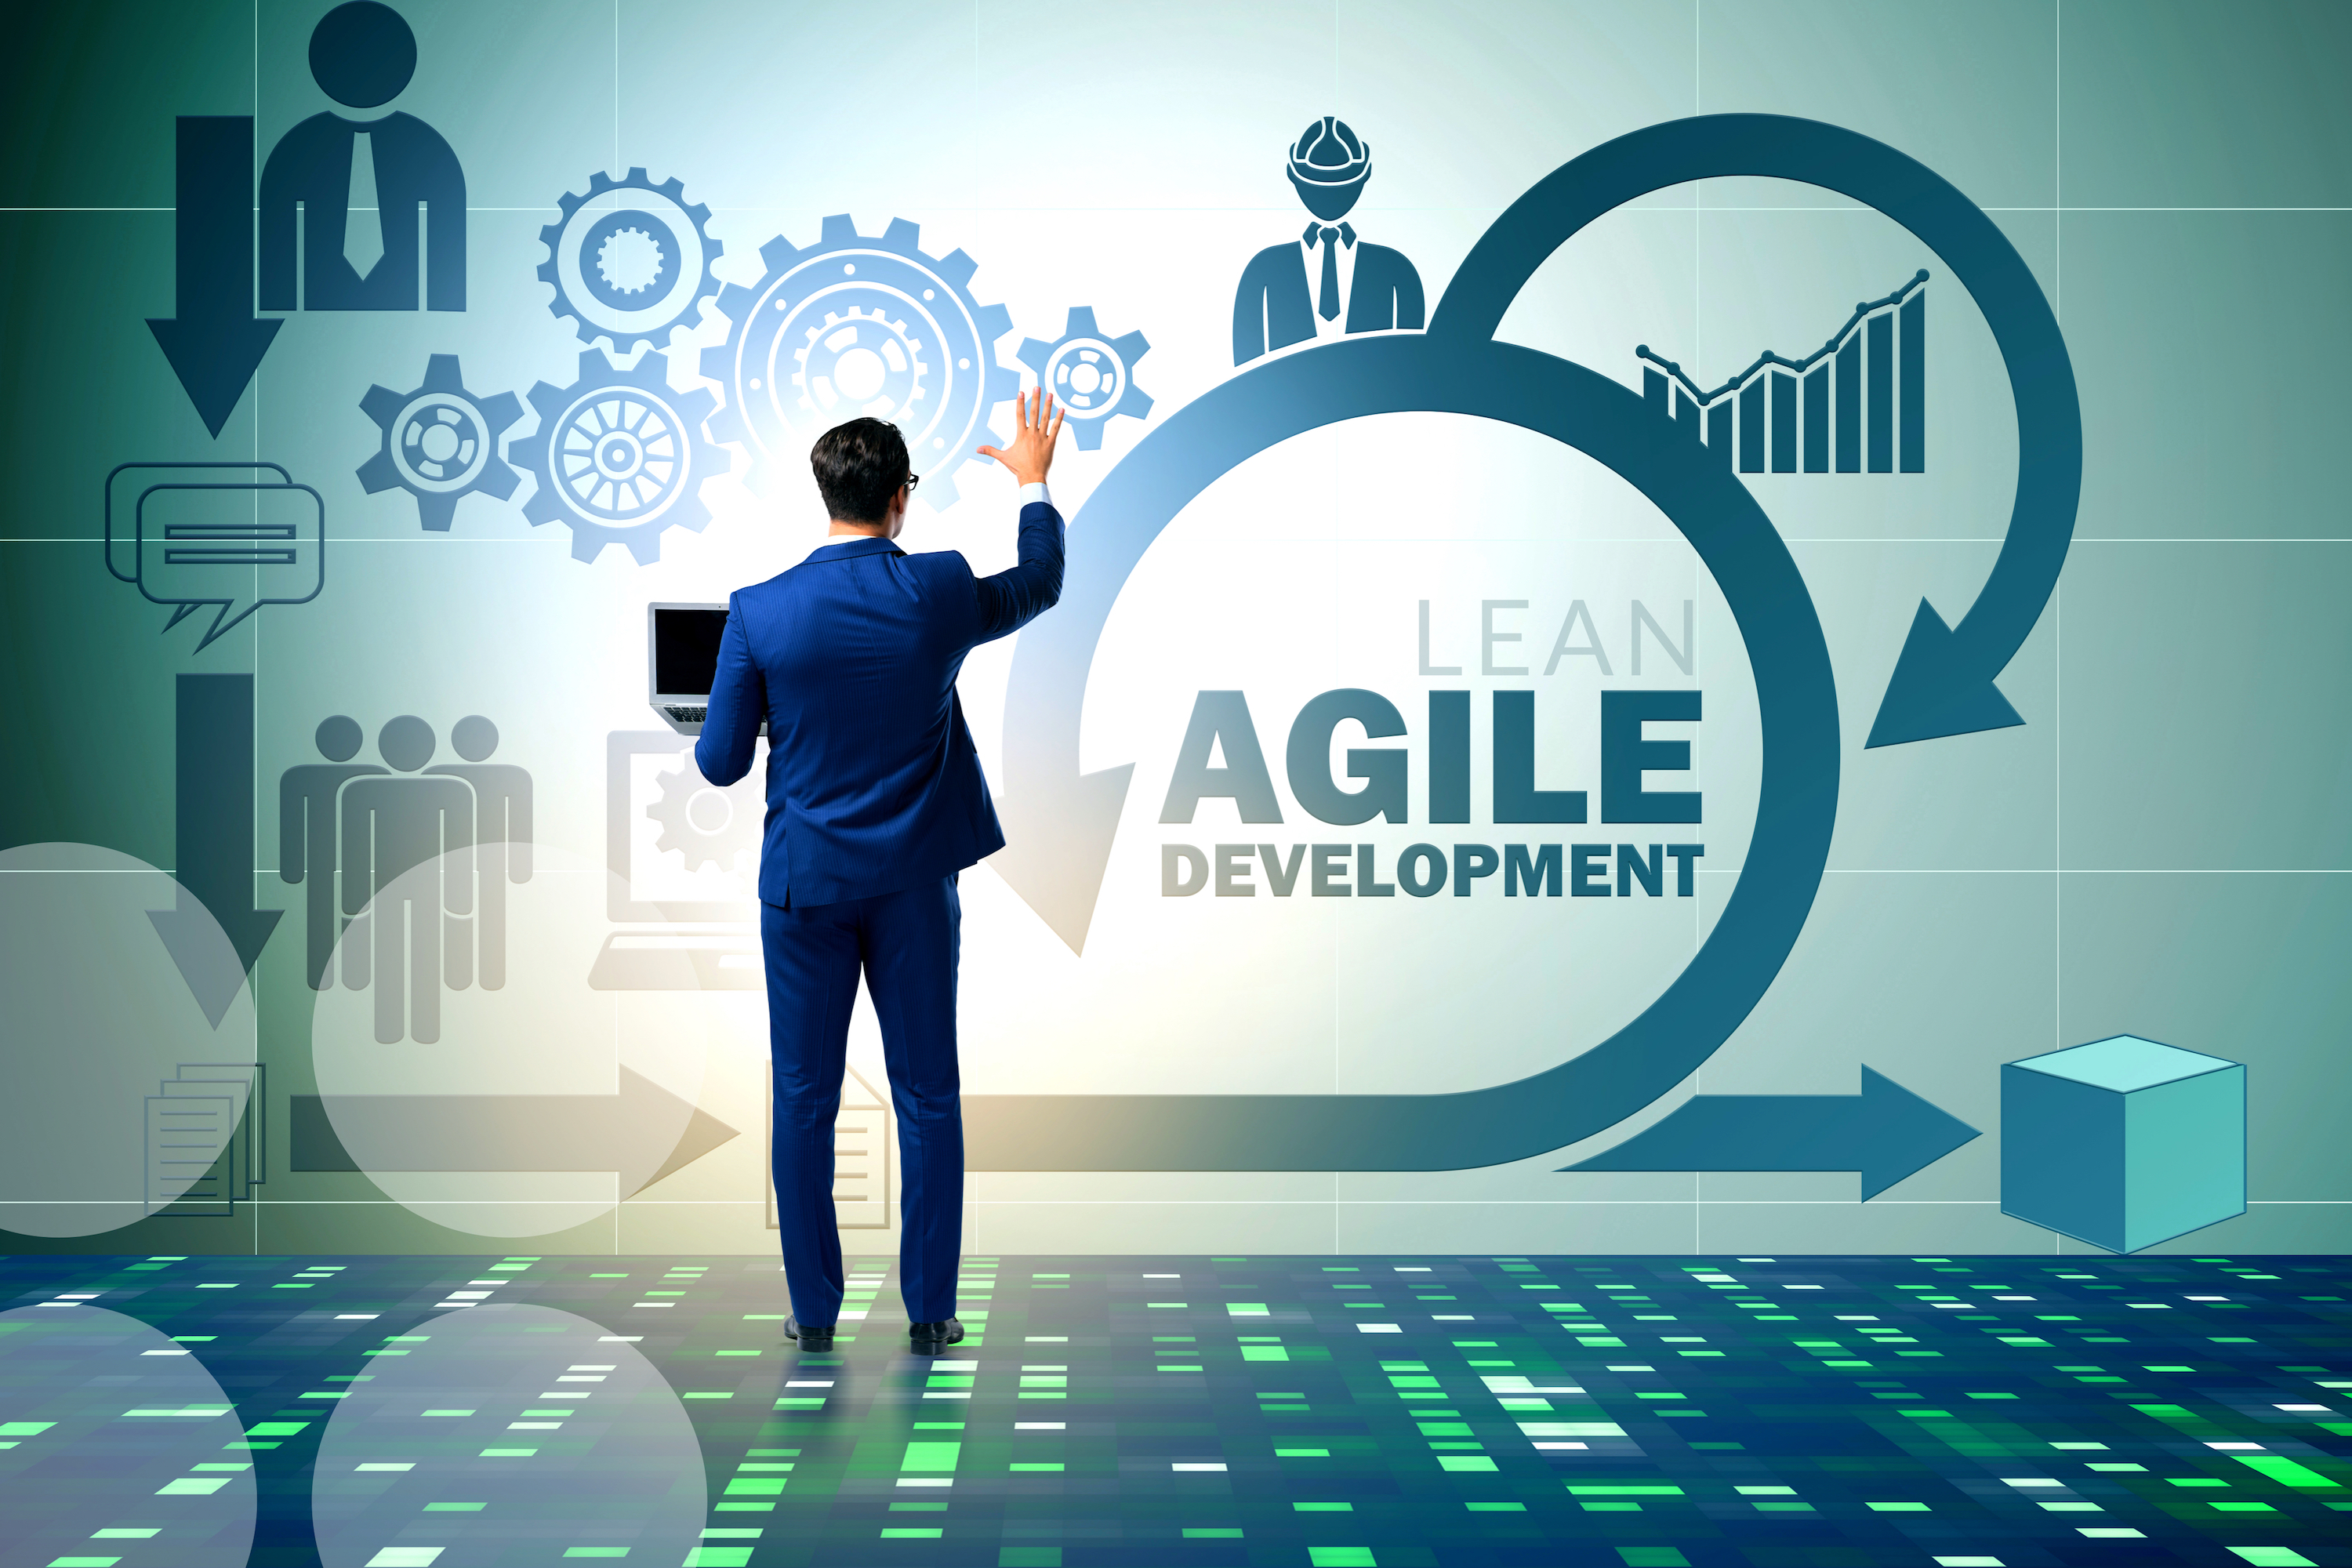 Using Lean Management in Building Agile Organizations